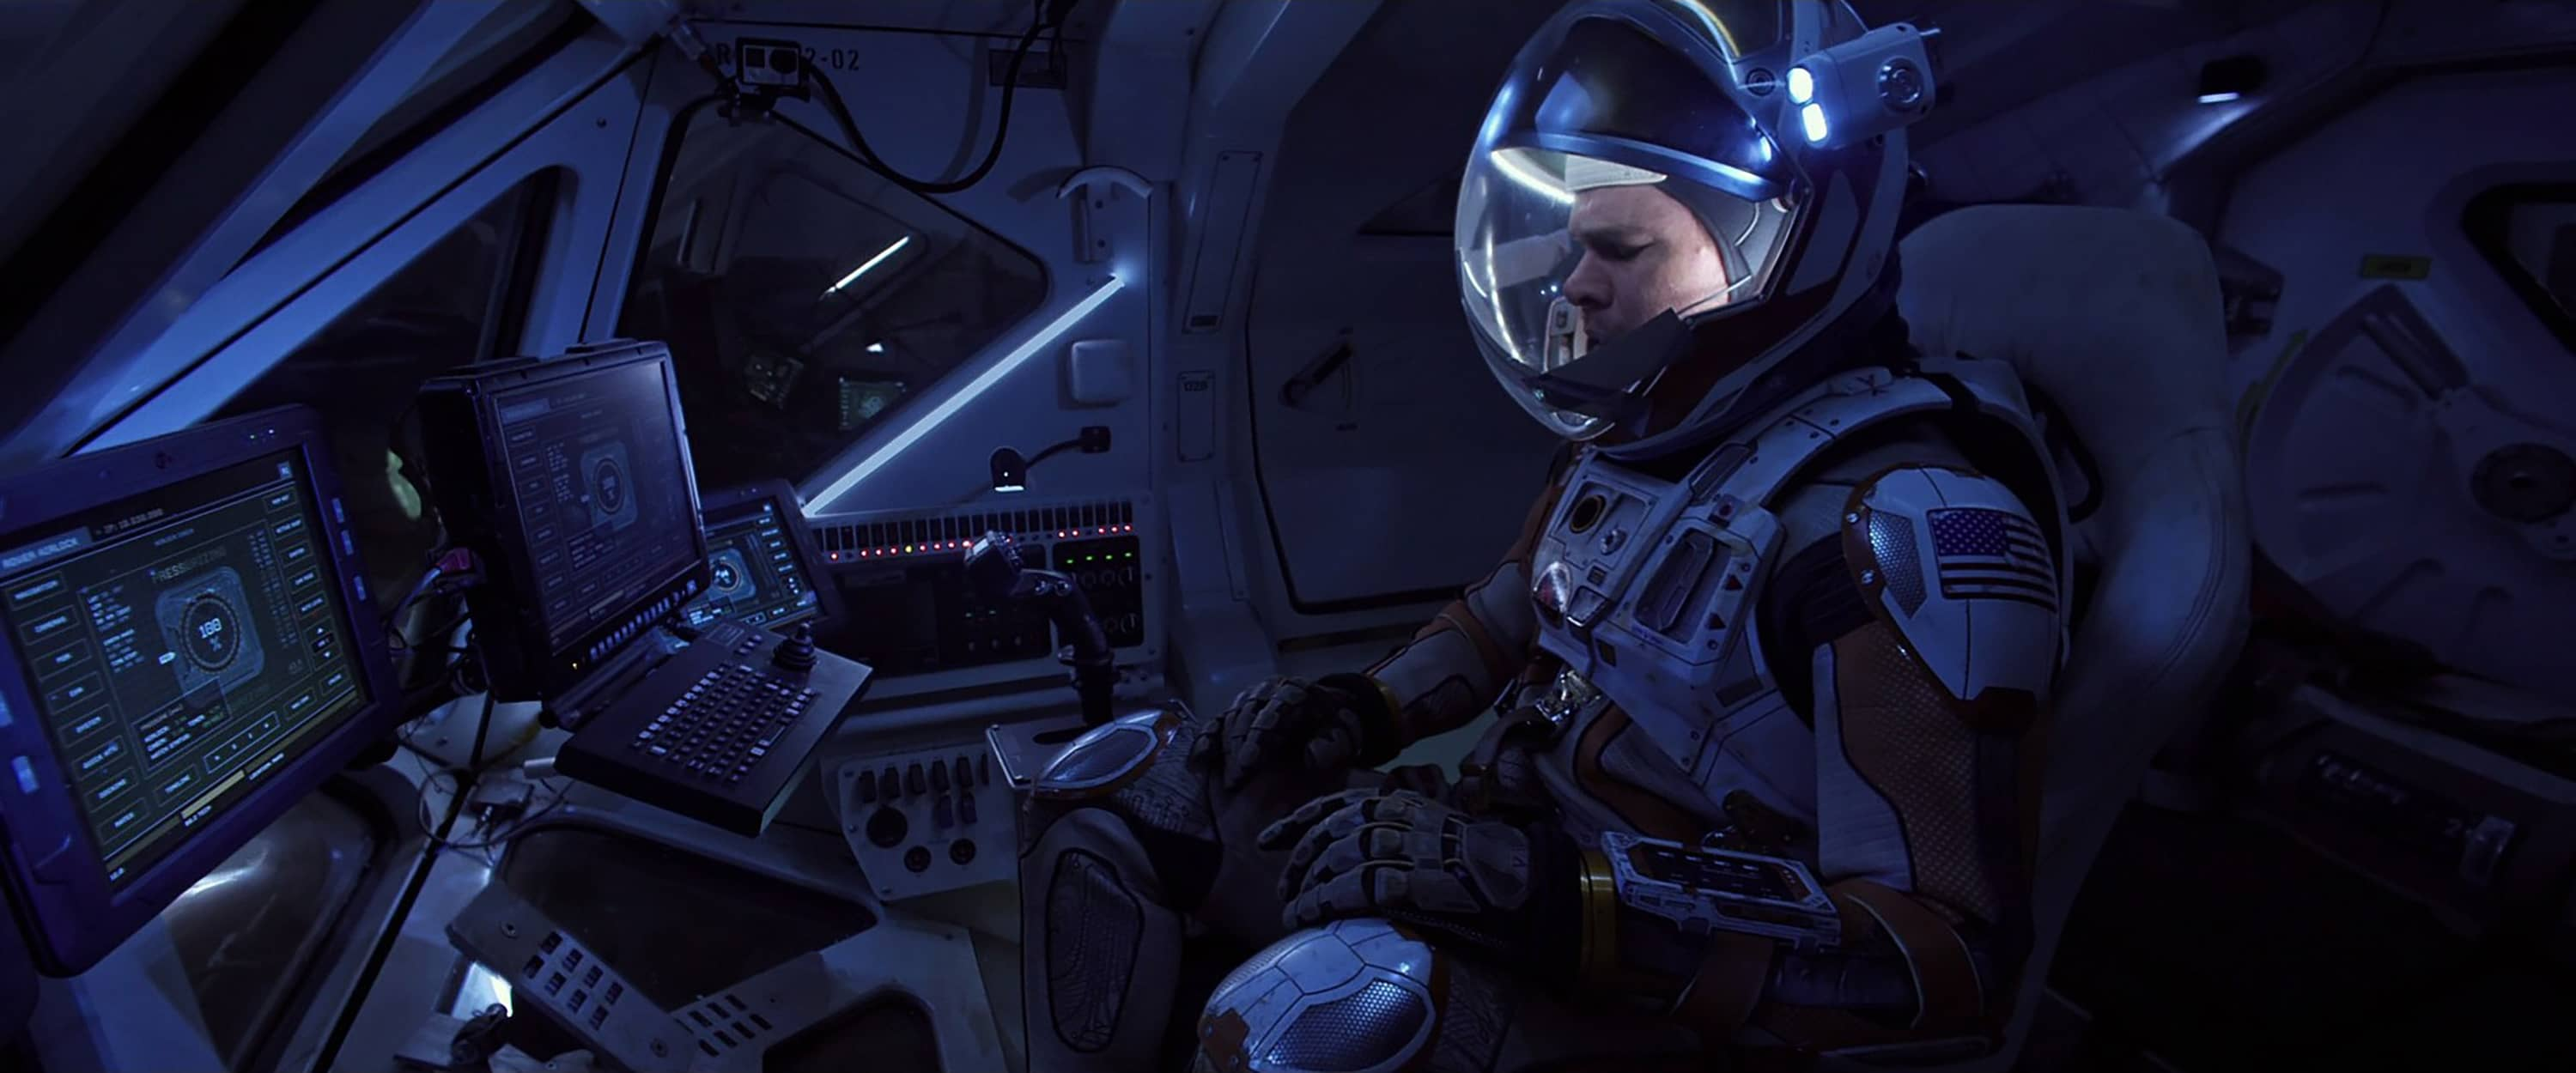 A man sitting inside the cockpit of a spaceship